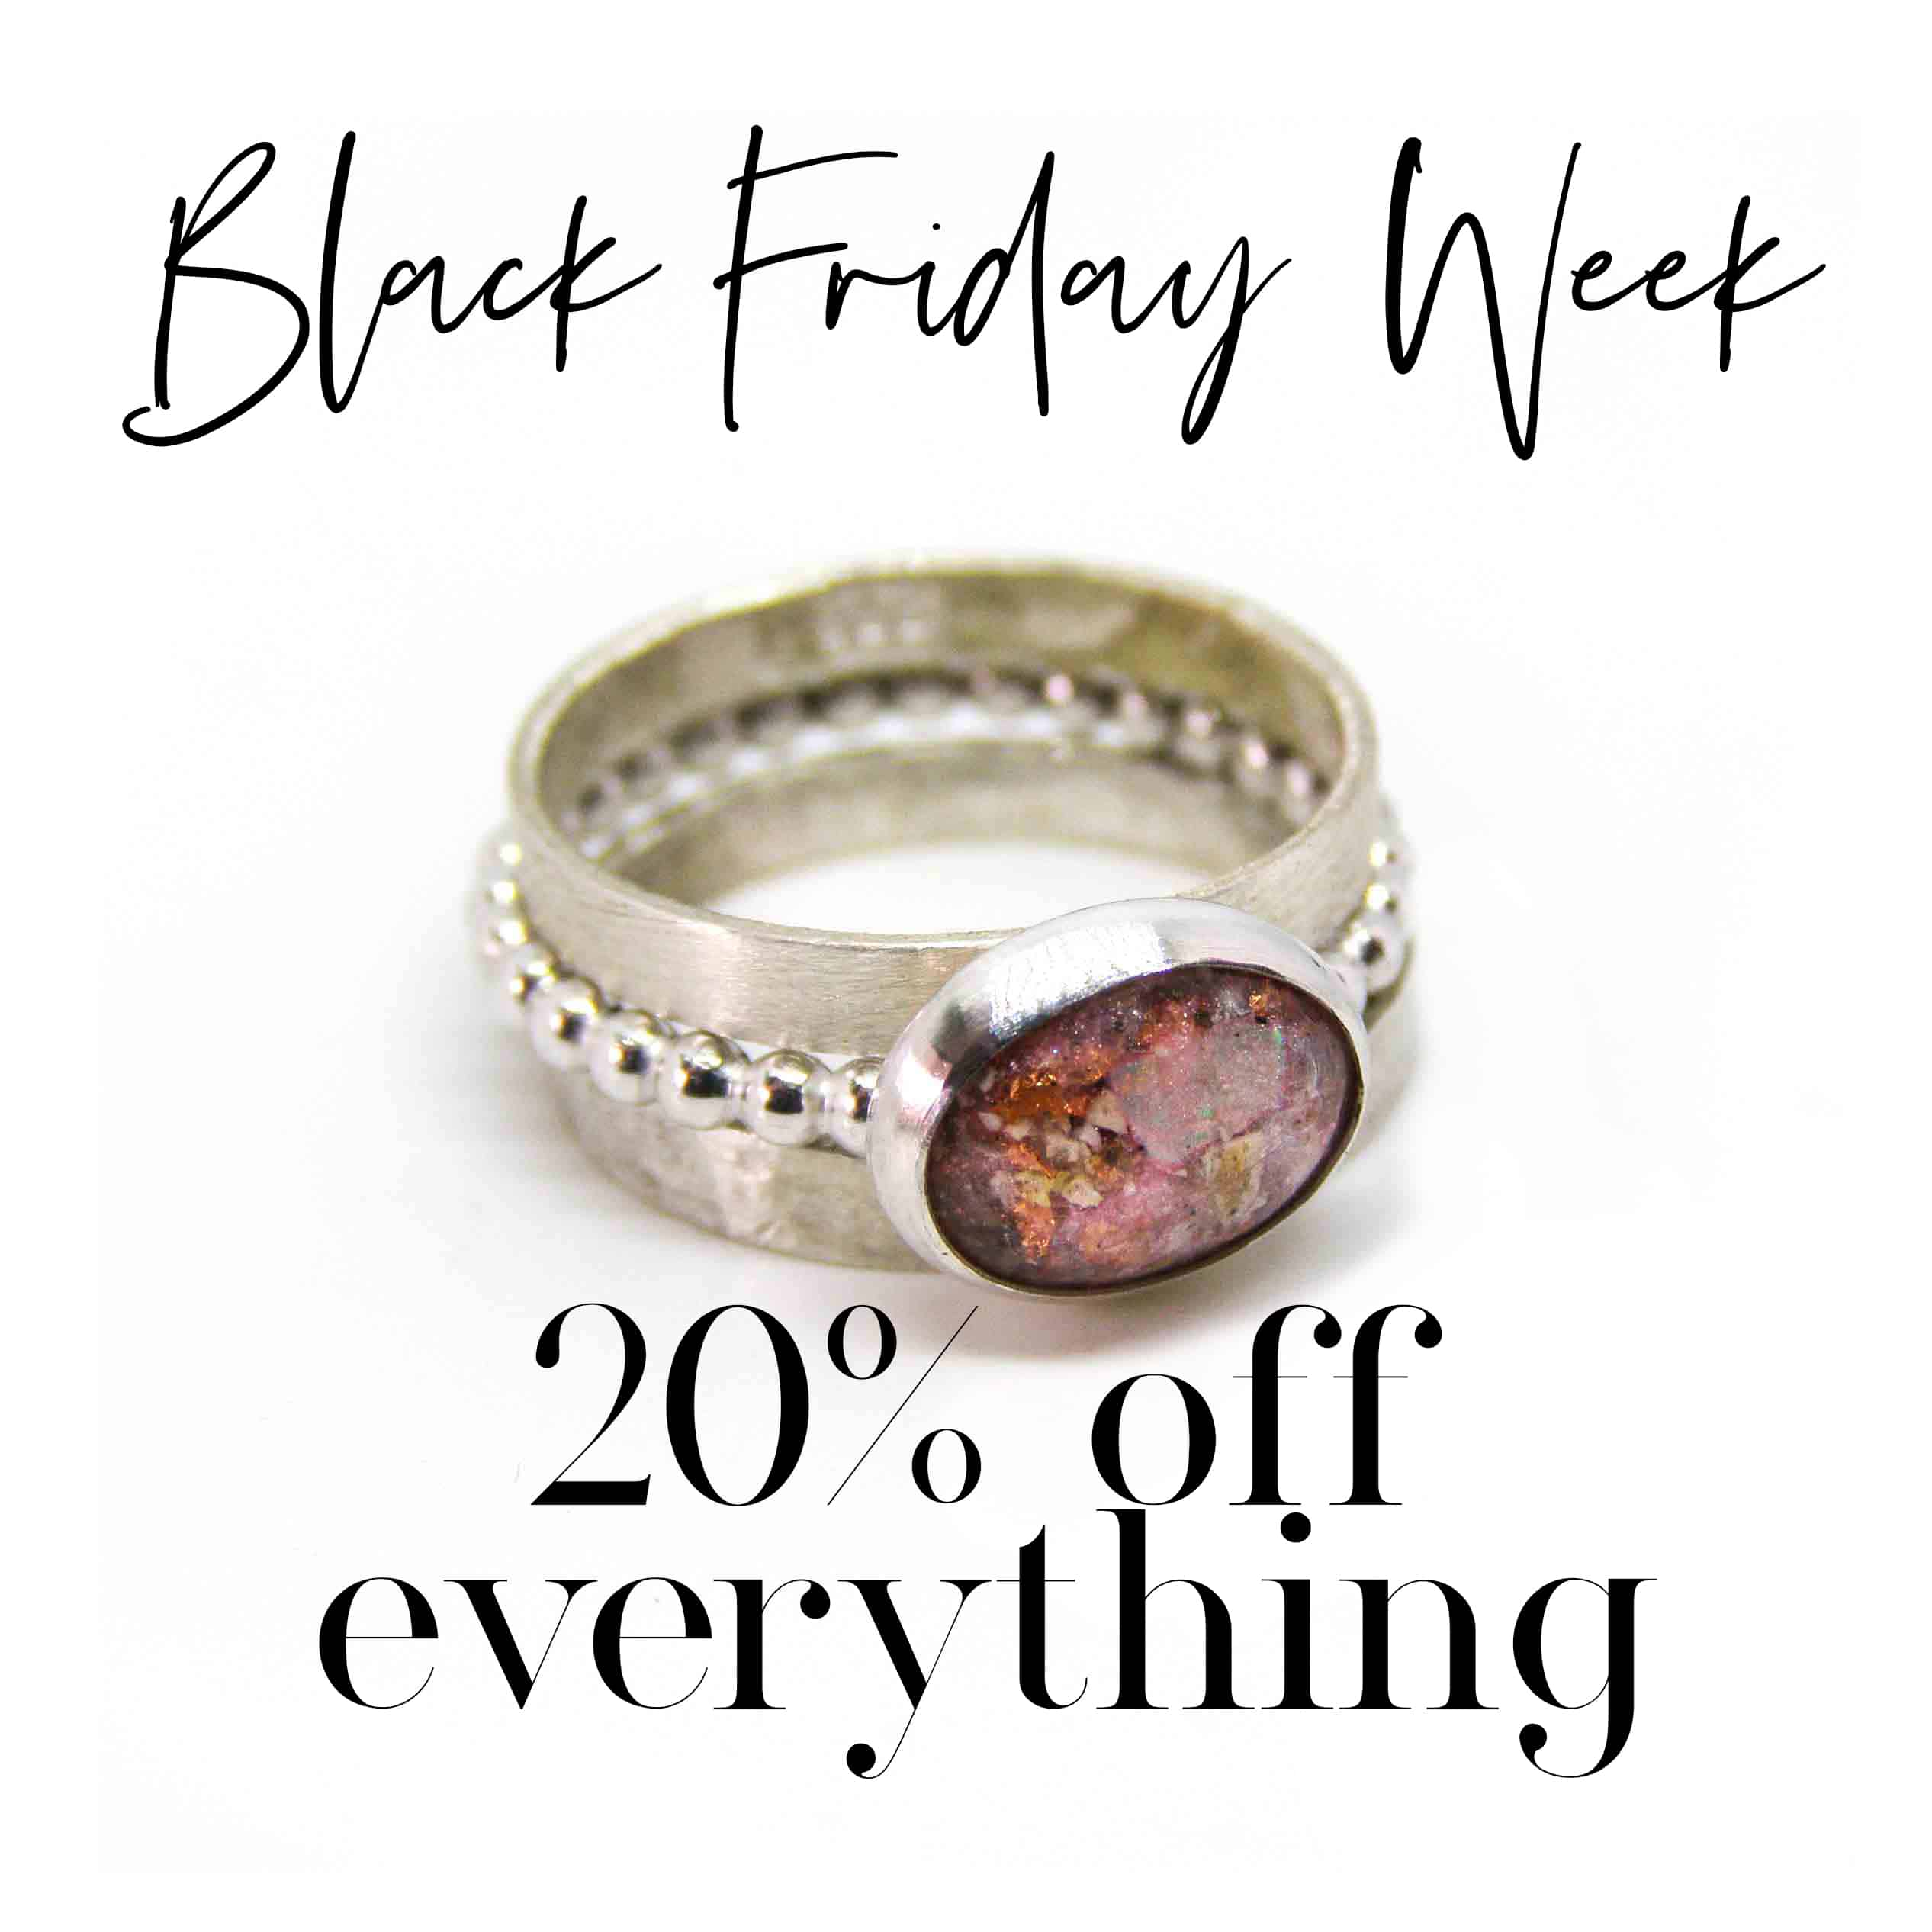 Black Friday 2019 20% off everything